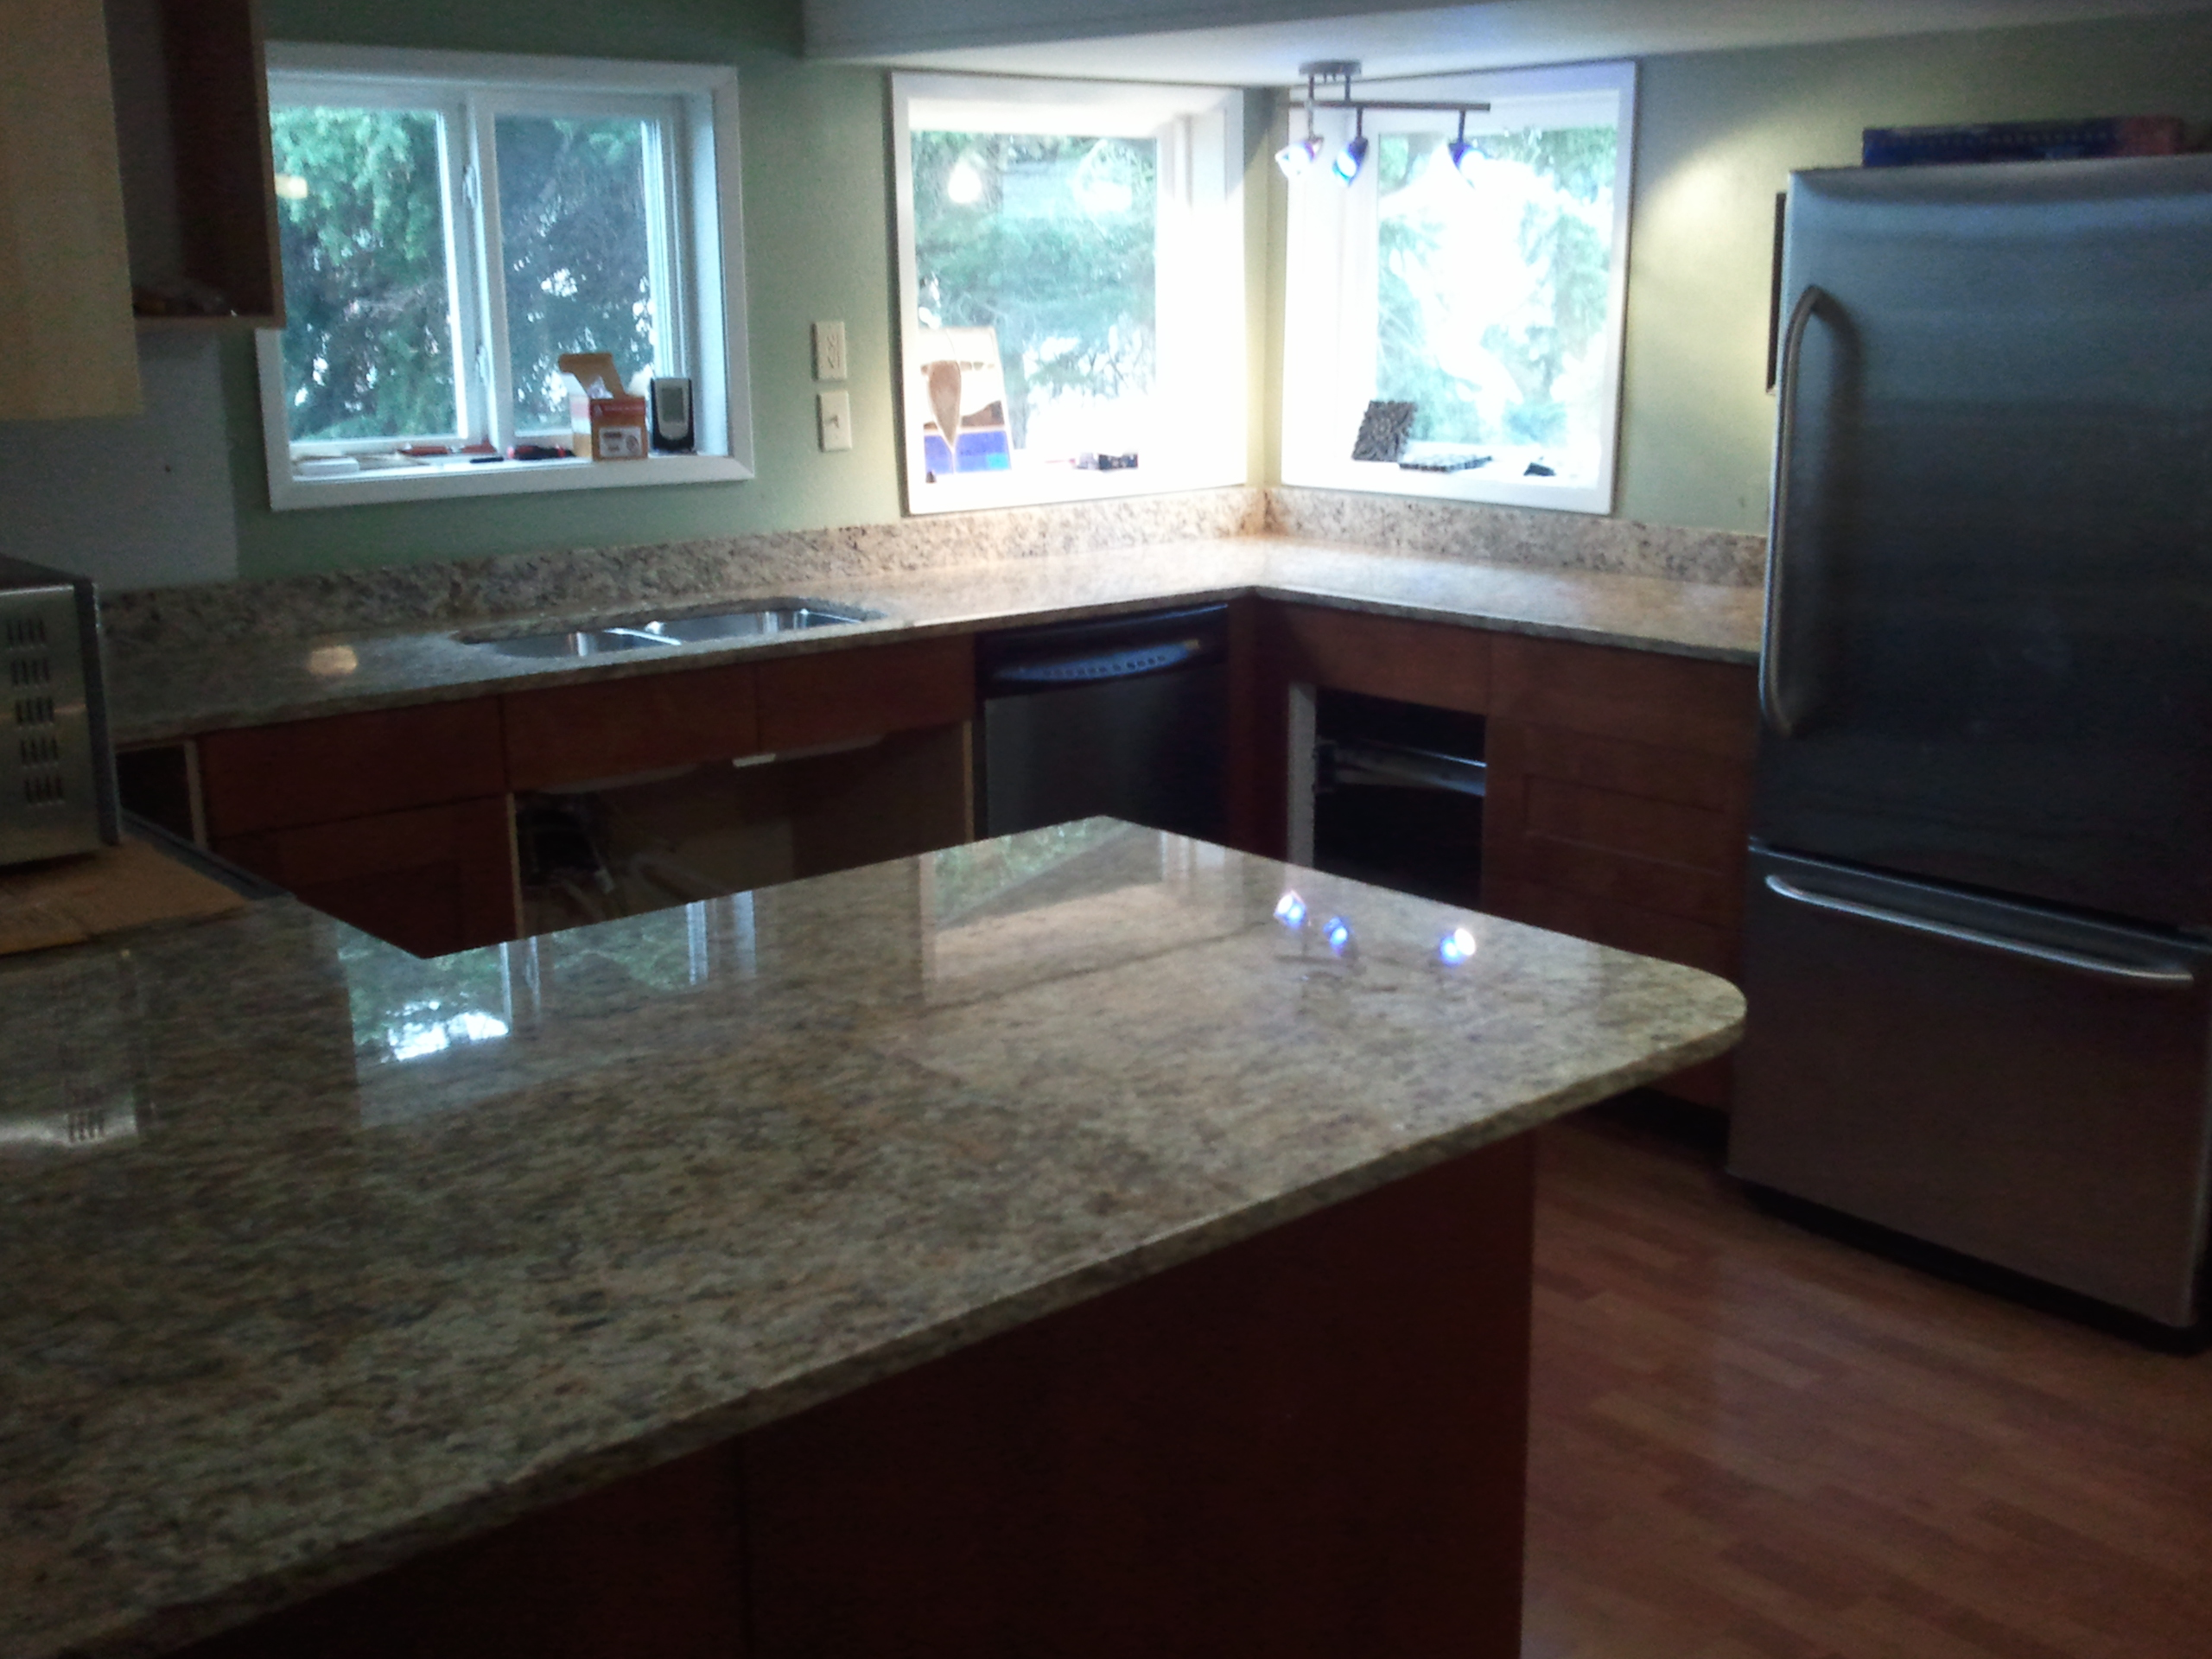 Which granite countertop color goes best with your kitchen combo?